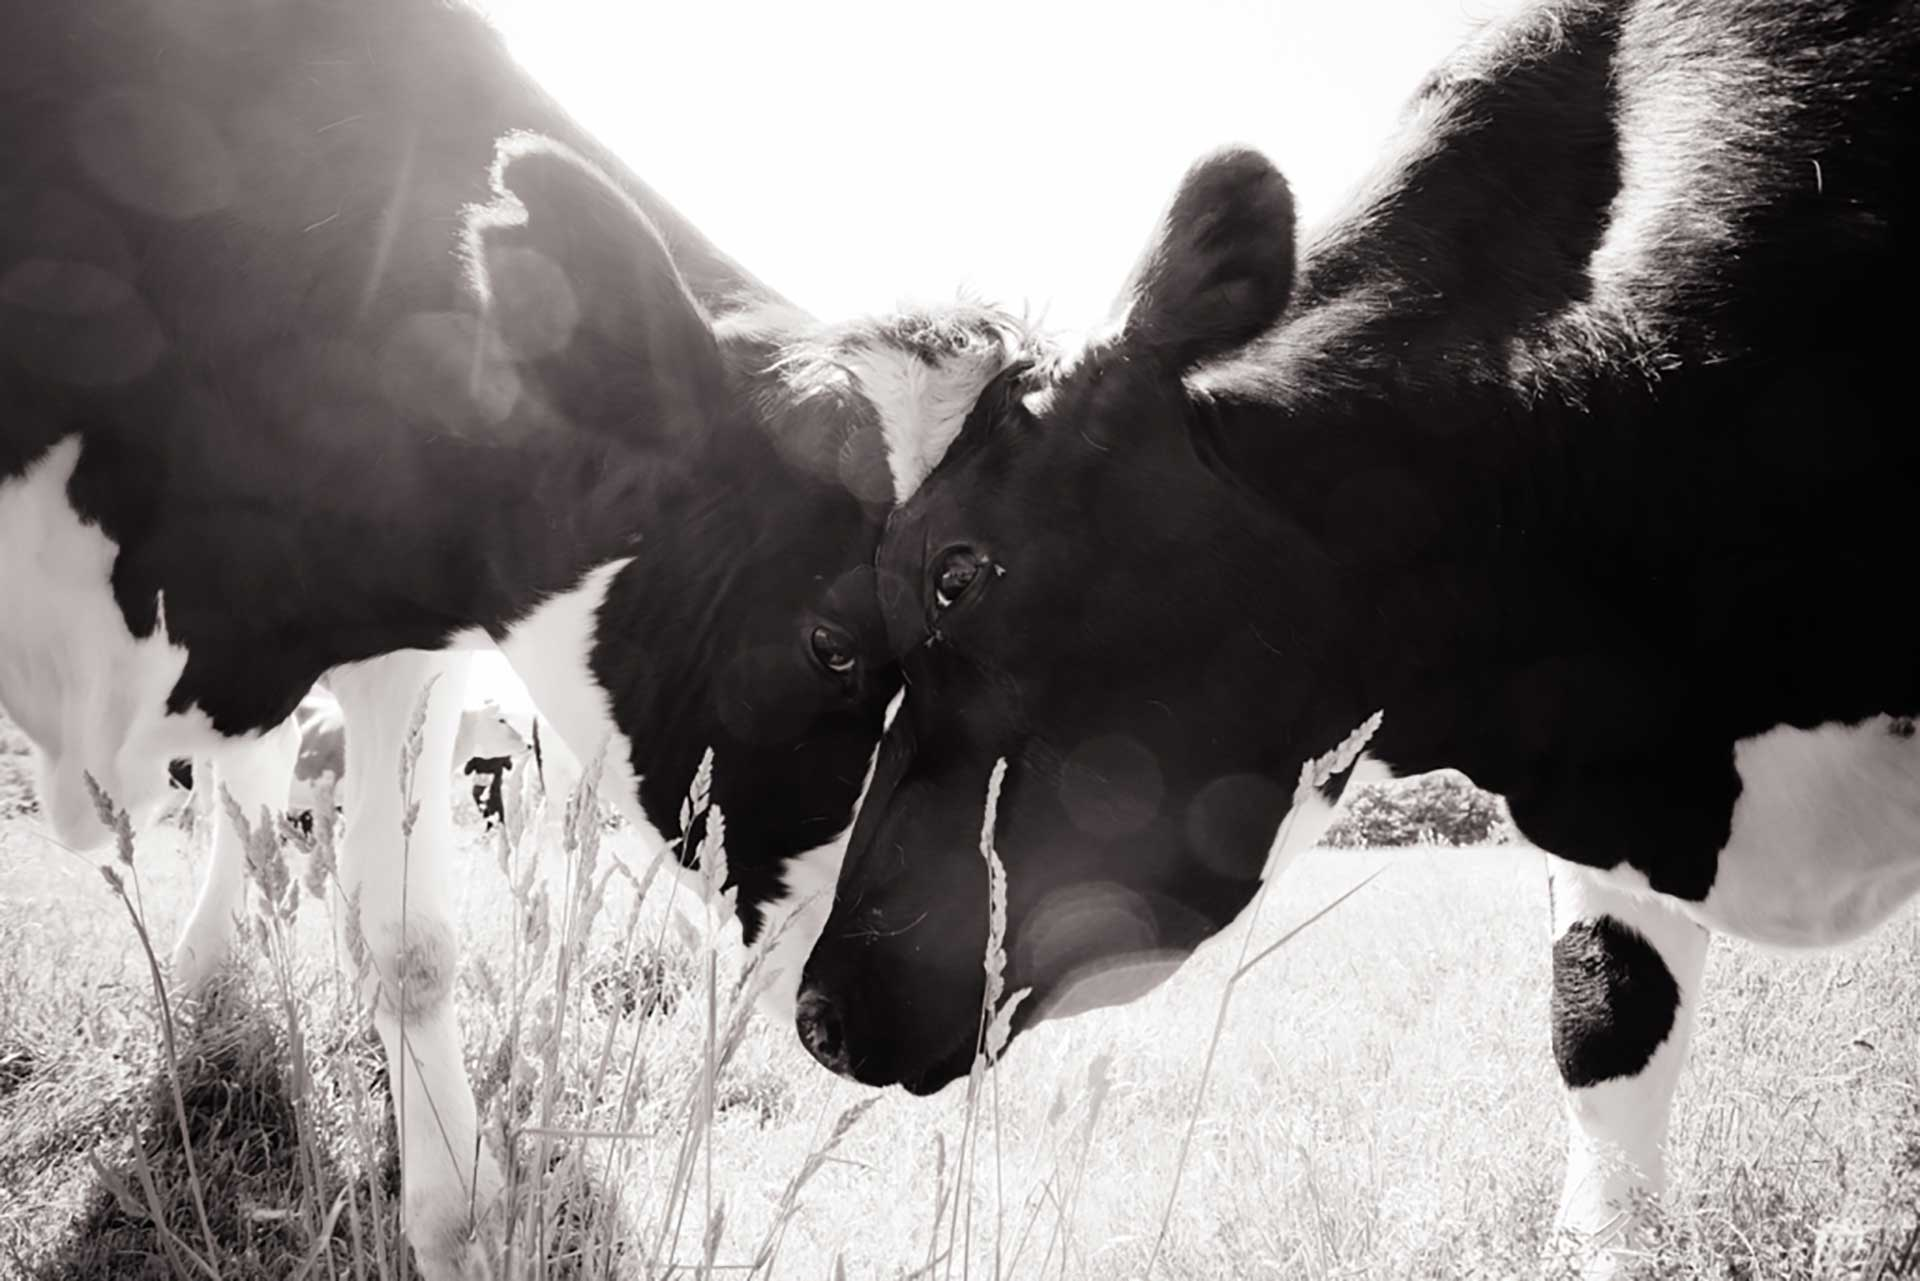 A black and white closeup photo of two cows nuzzling each other.